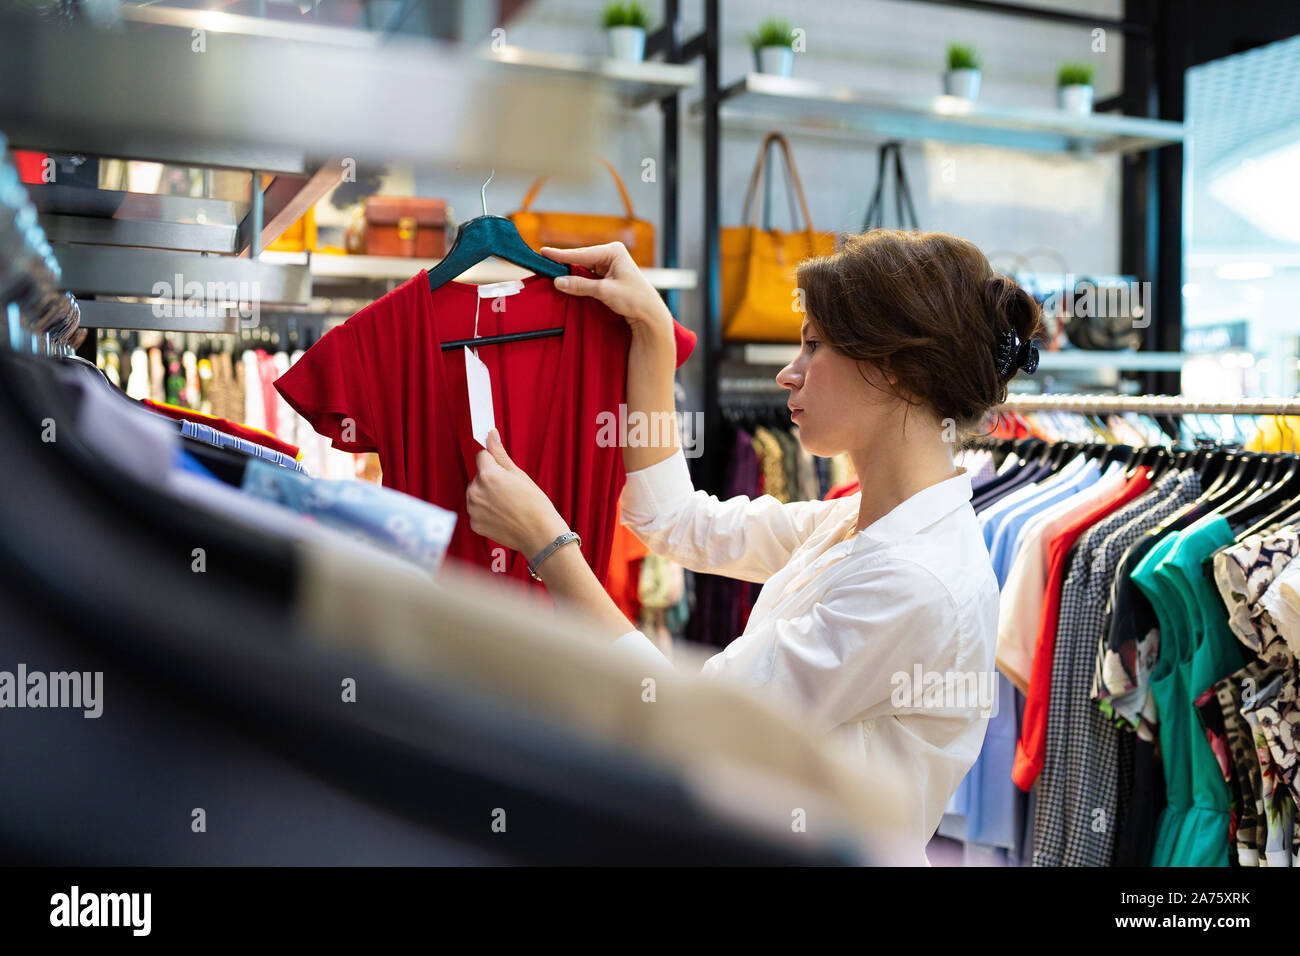 Dress With Price Tag High Resolution Stock Photography And Images Alamy